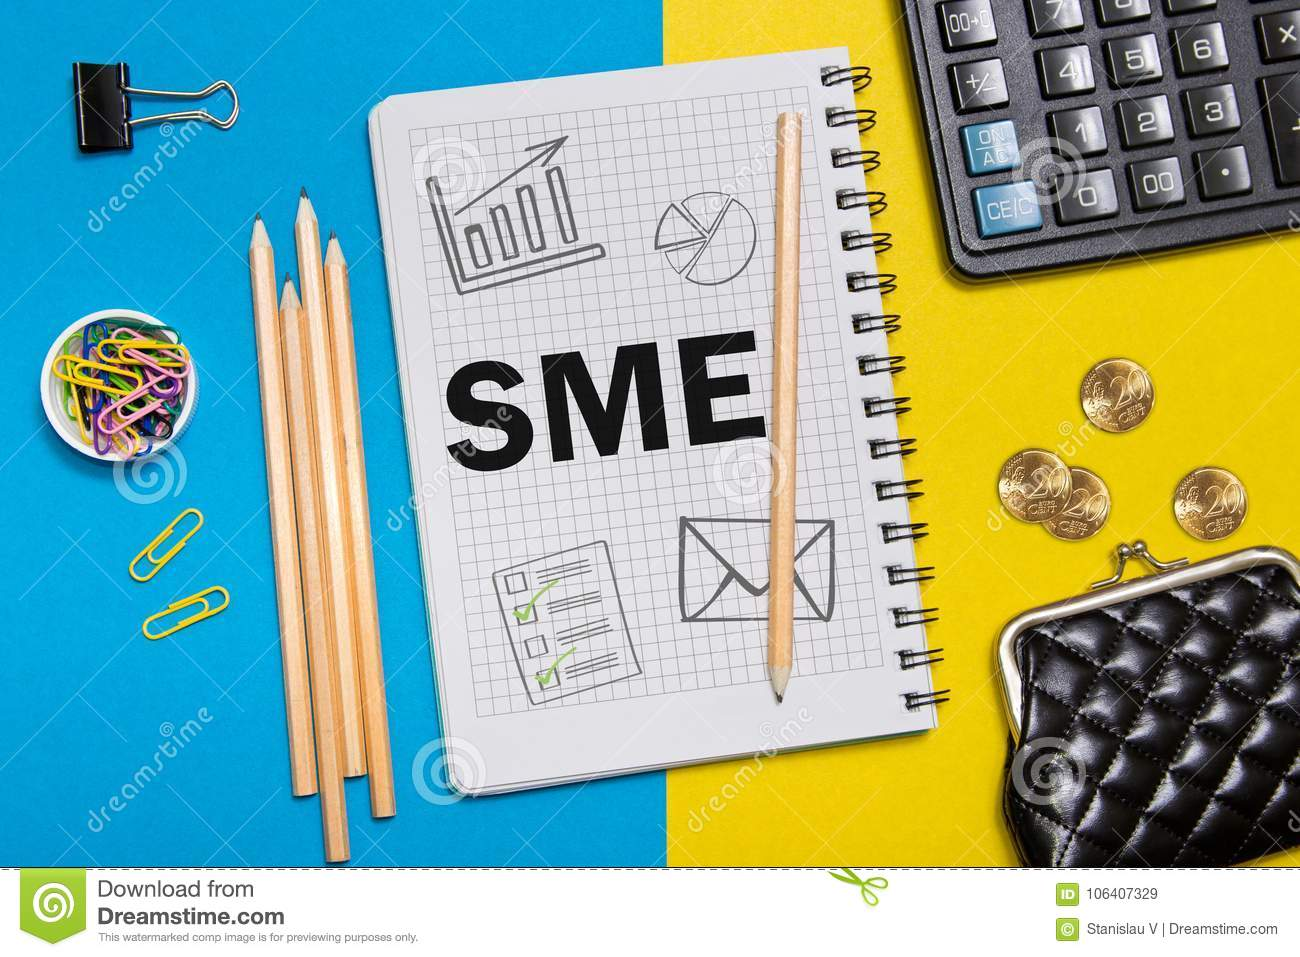 Small and Medium Enterprise, SME notes in the notebook on the Desk of a businessman in office. Business concept SME